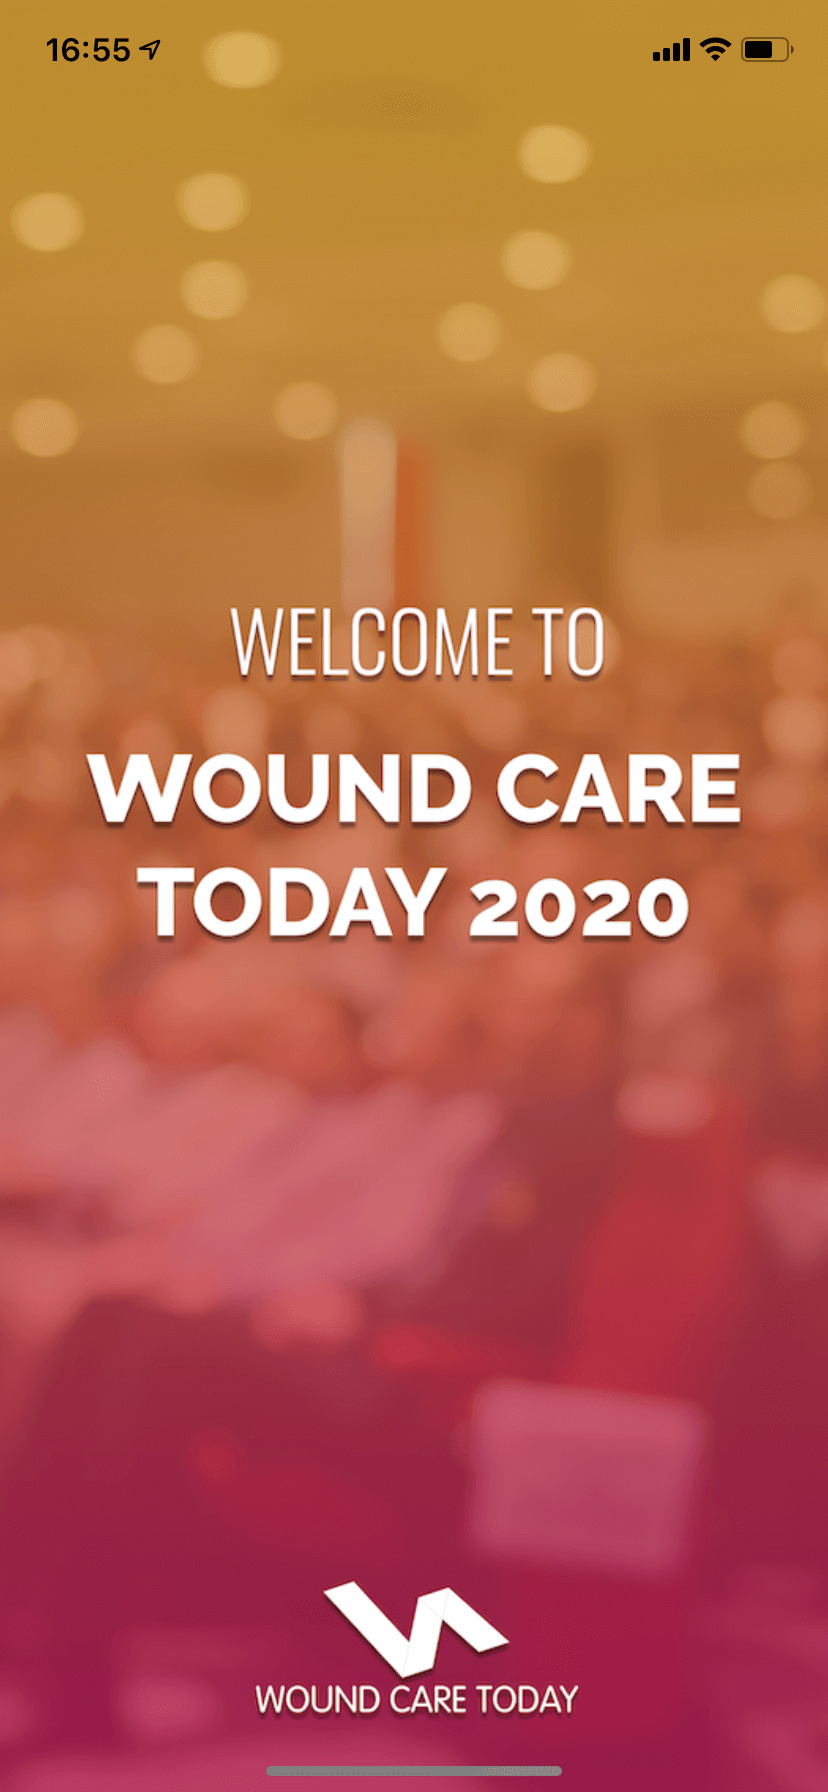 Wound Care 2020 branded splash screen in event app by VenuIQ